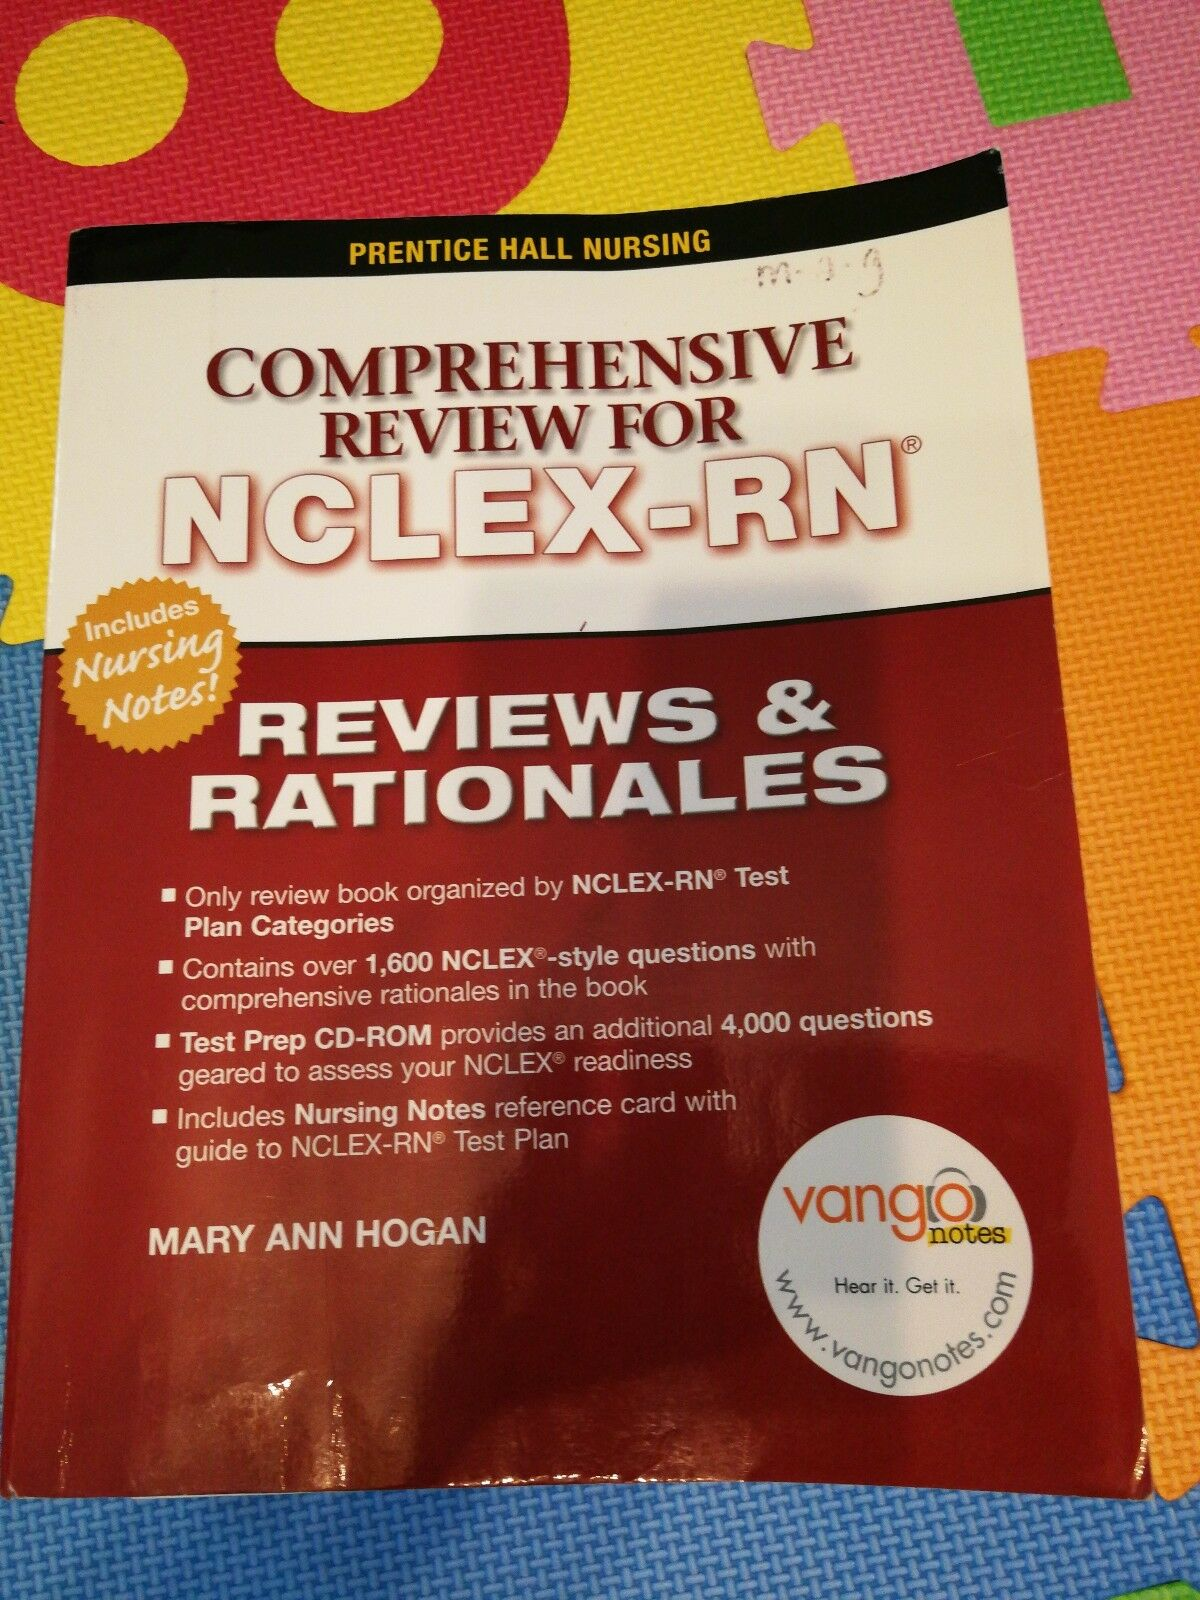 prentice halls comprehensive review for nclexrn reviews rationales